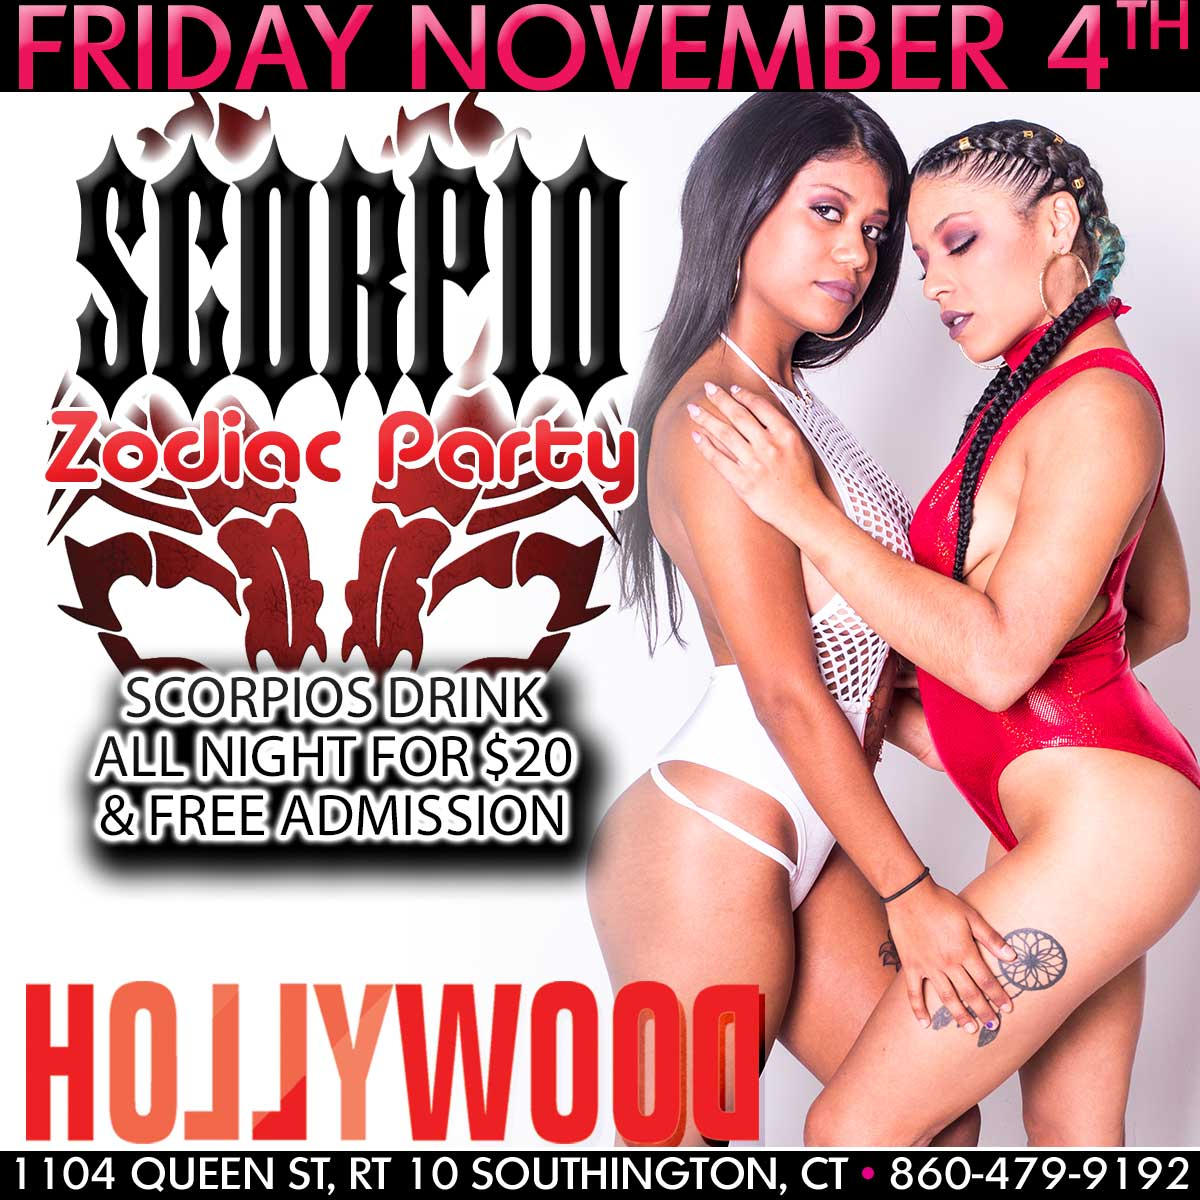 Scorpio Zodiac Party | Hollywood Strip Club Connecticut